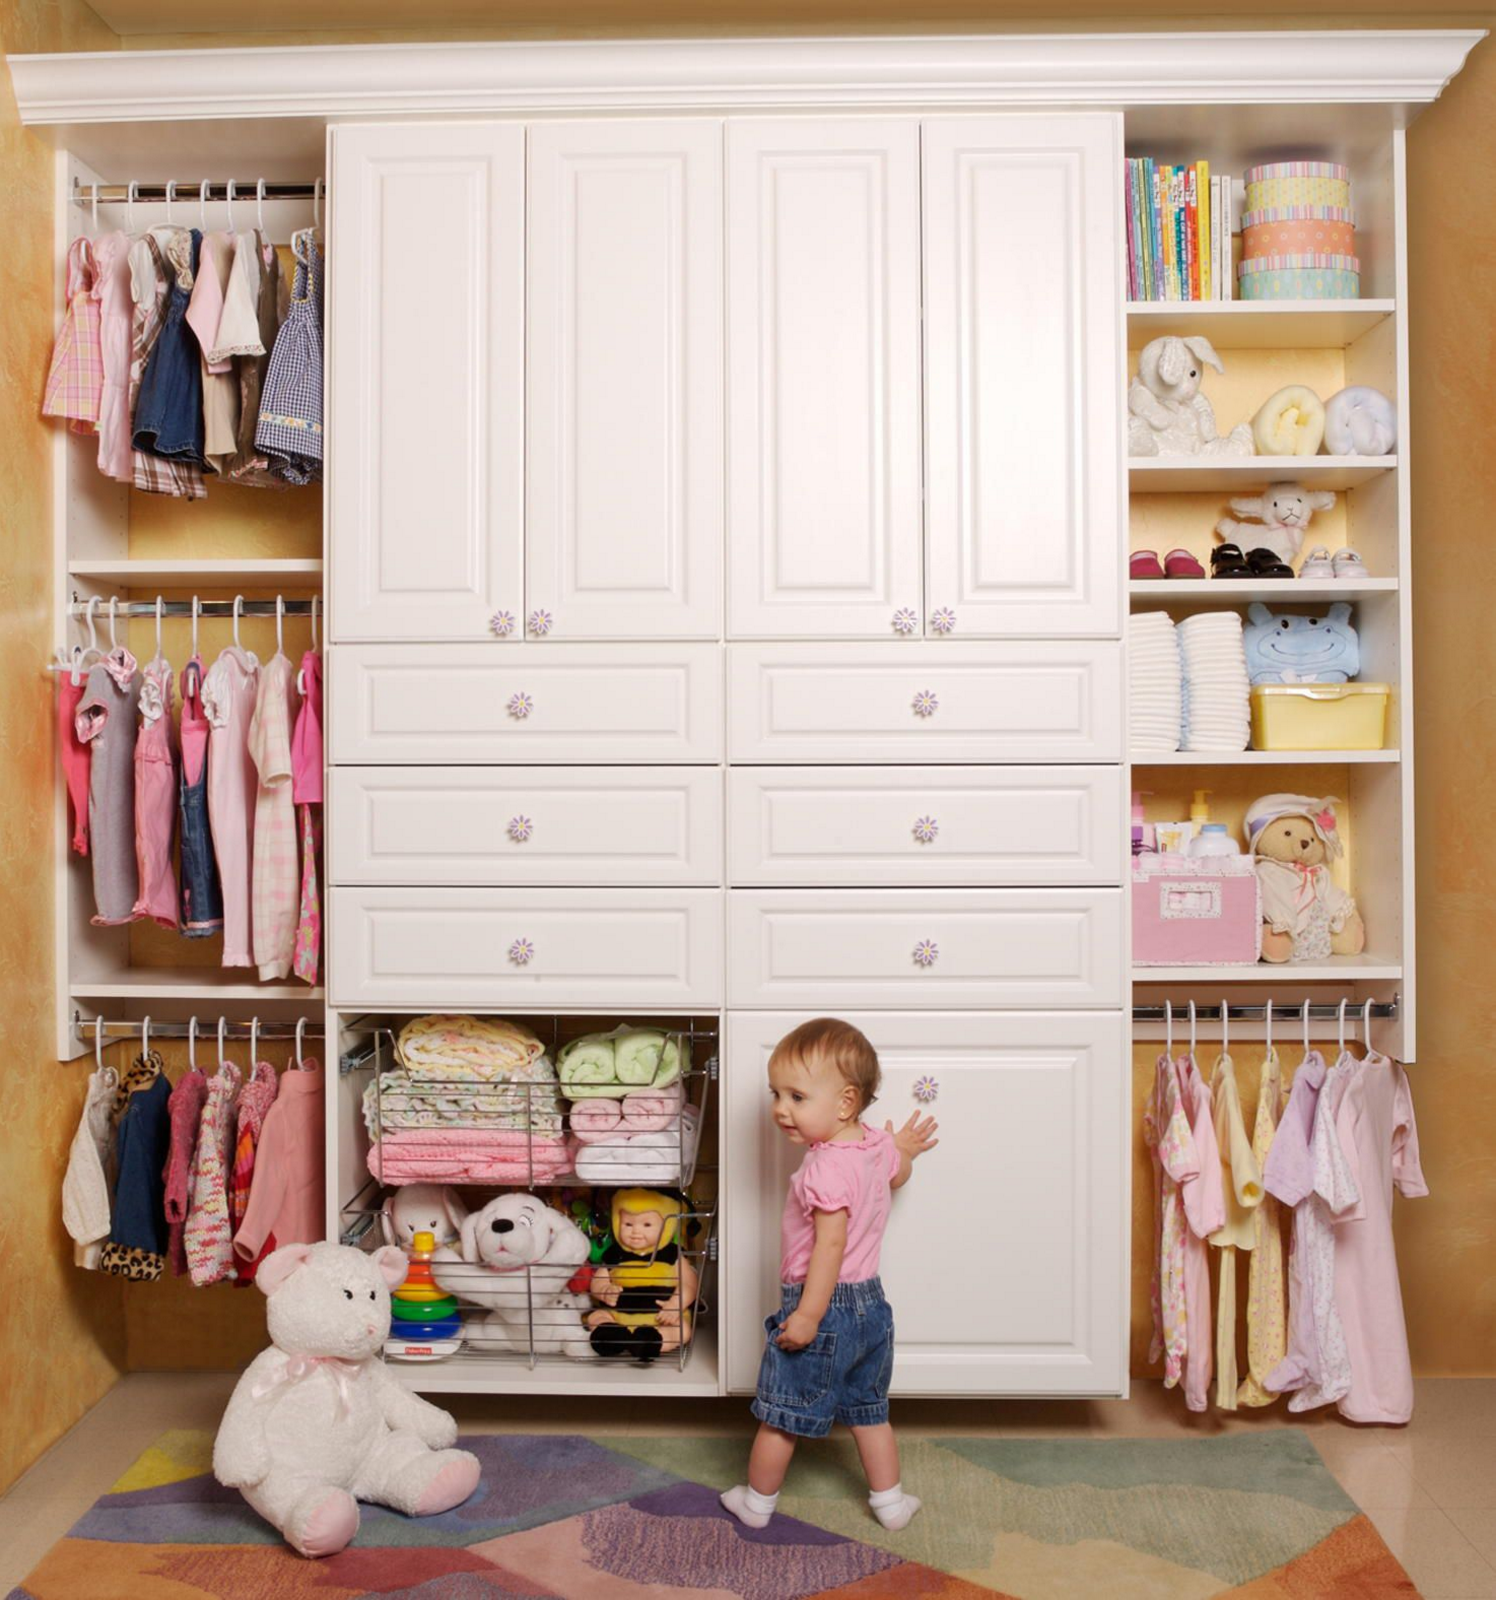 Even the littlest ones need organized storage solutions by closet